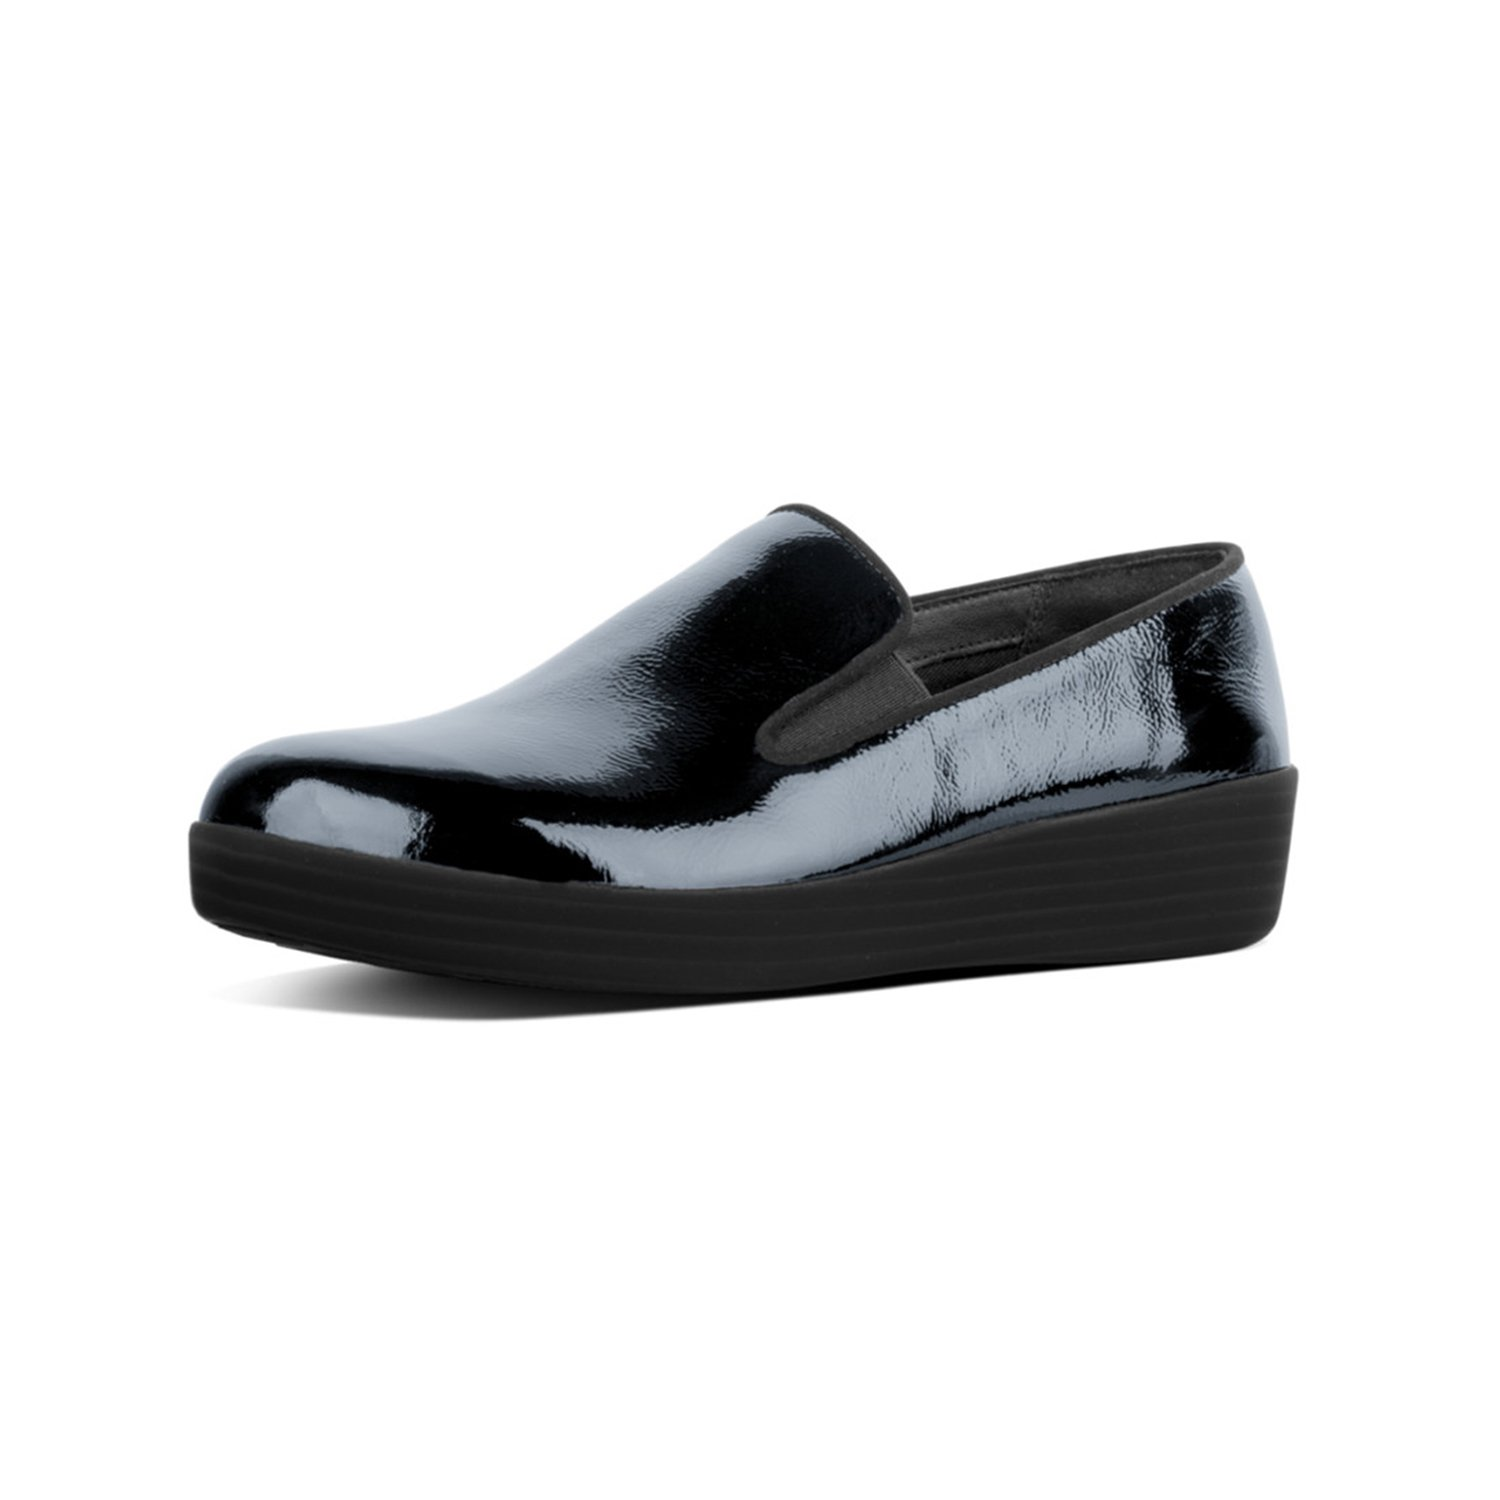 FitFlop Womens Superskate Patent Slip On Loafer Shoes, Midnight Navy, US 5